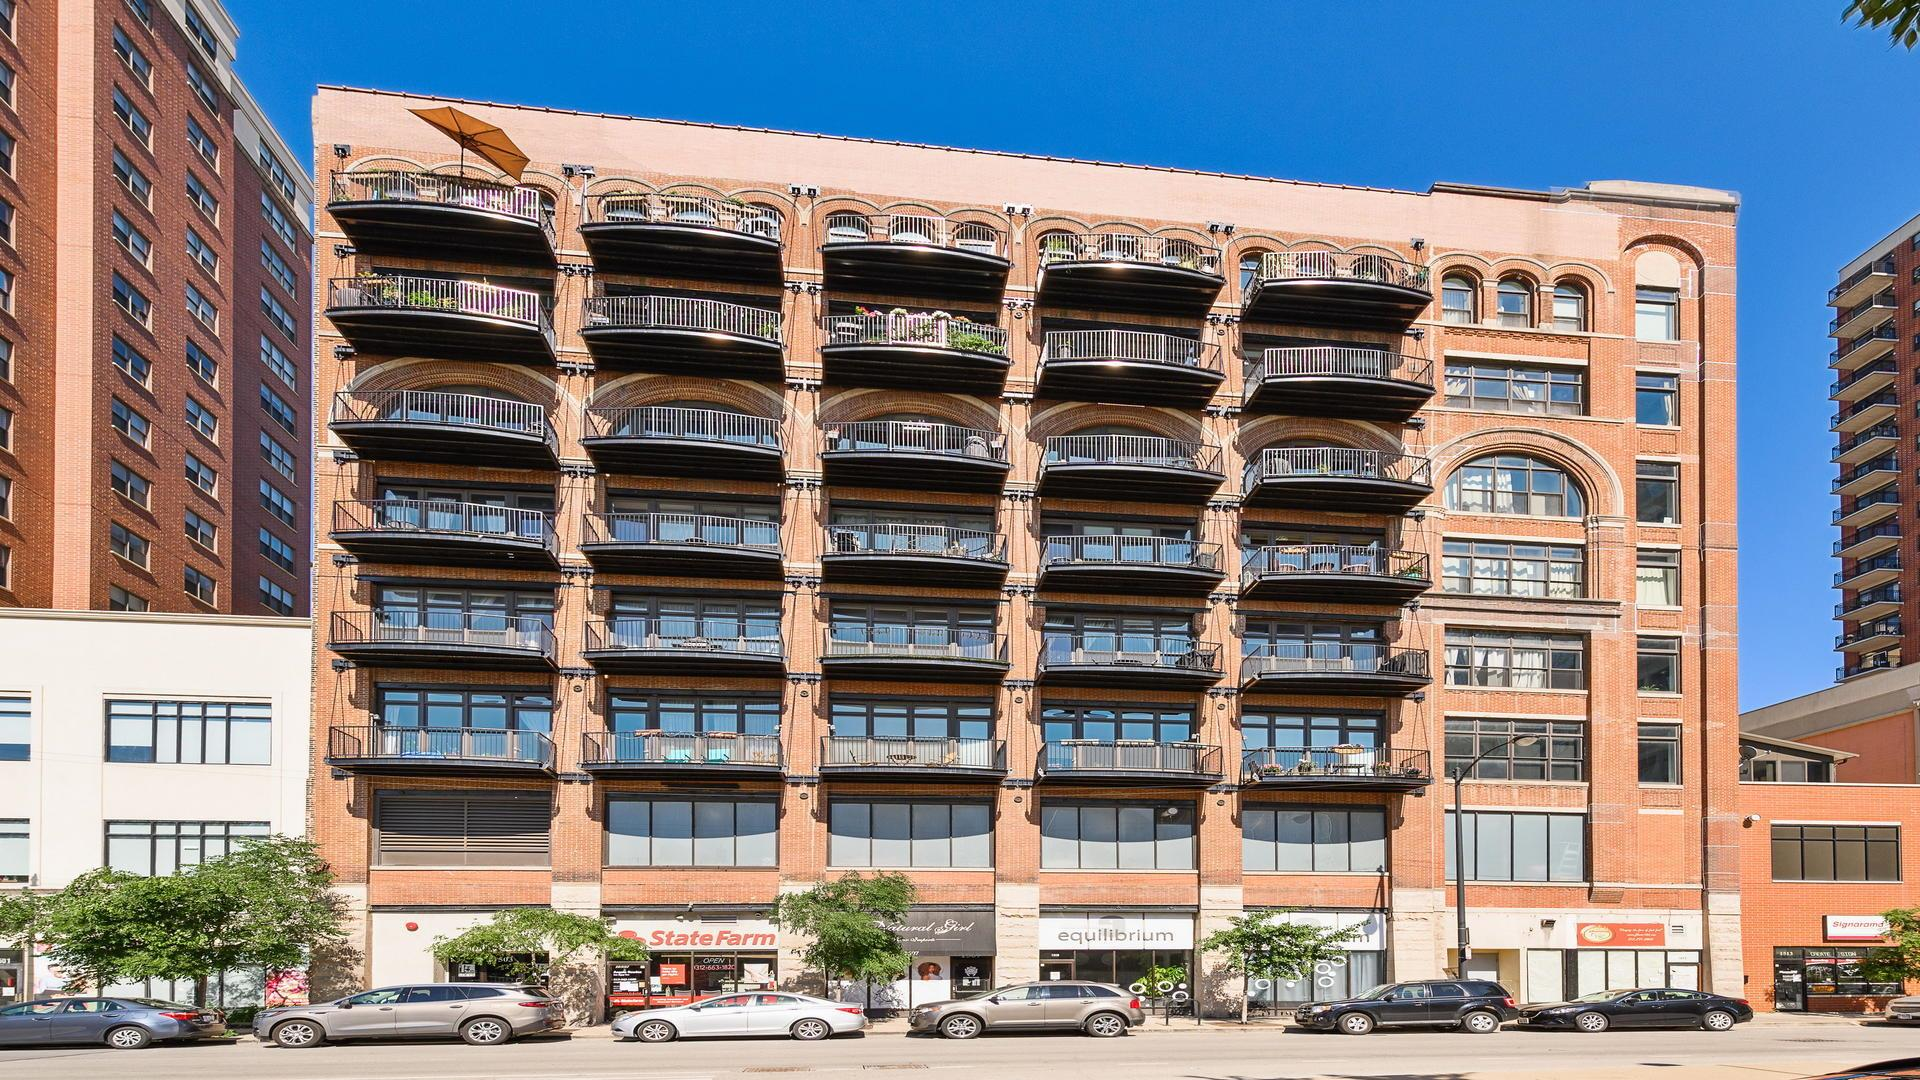 1503 S STATE Street #805, Chicago, IL 60605 - #: 10853322